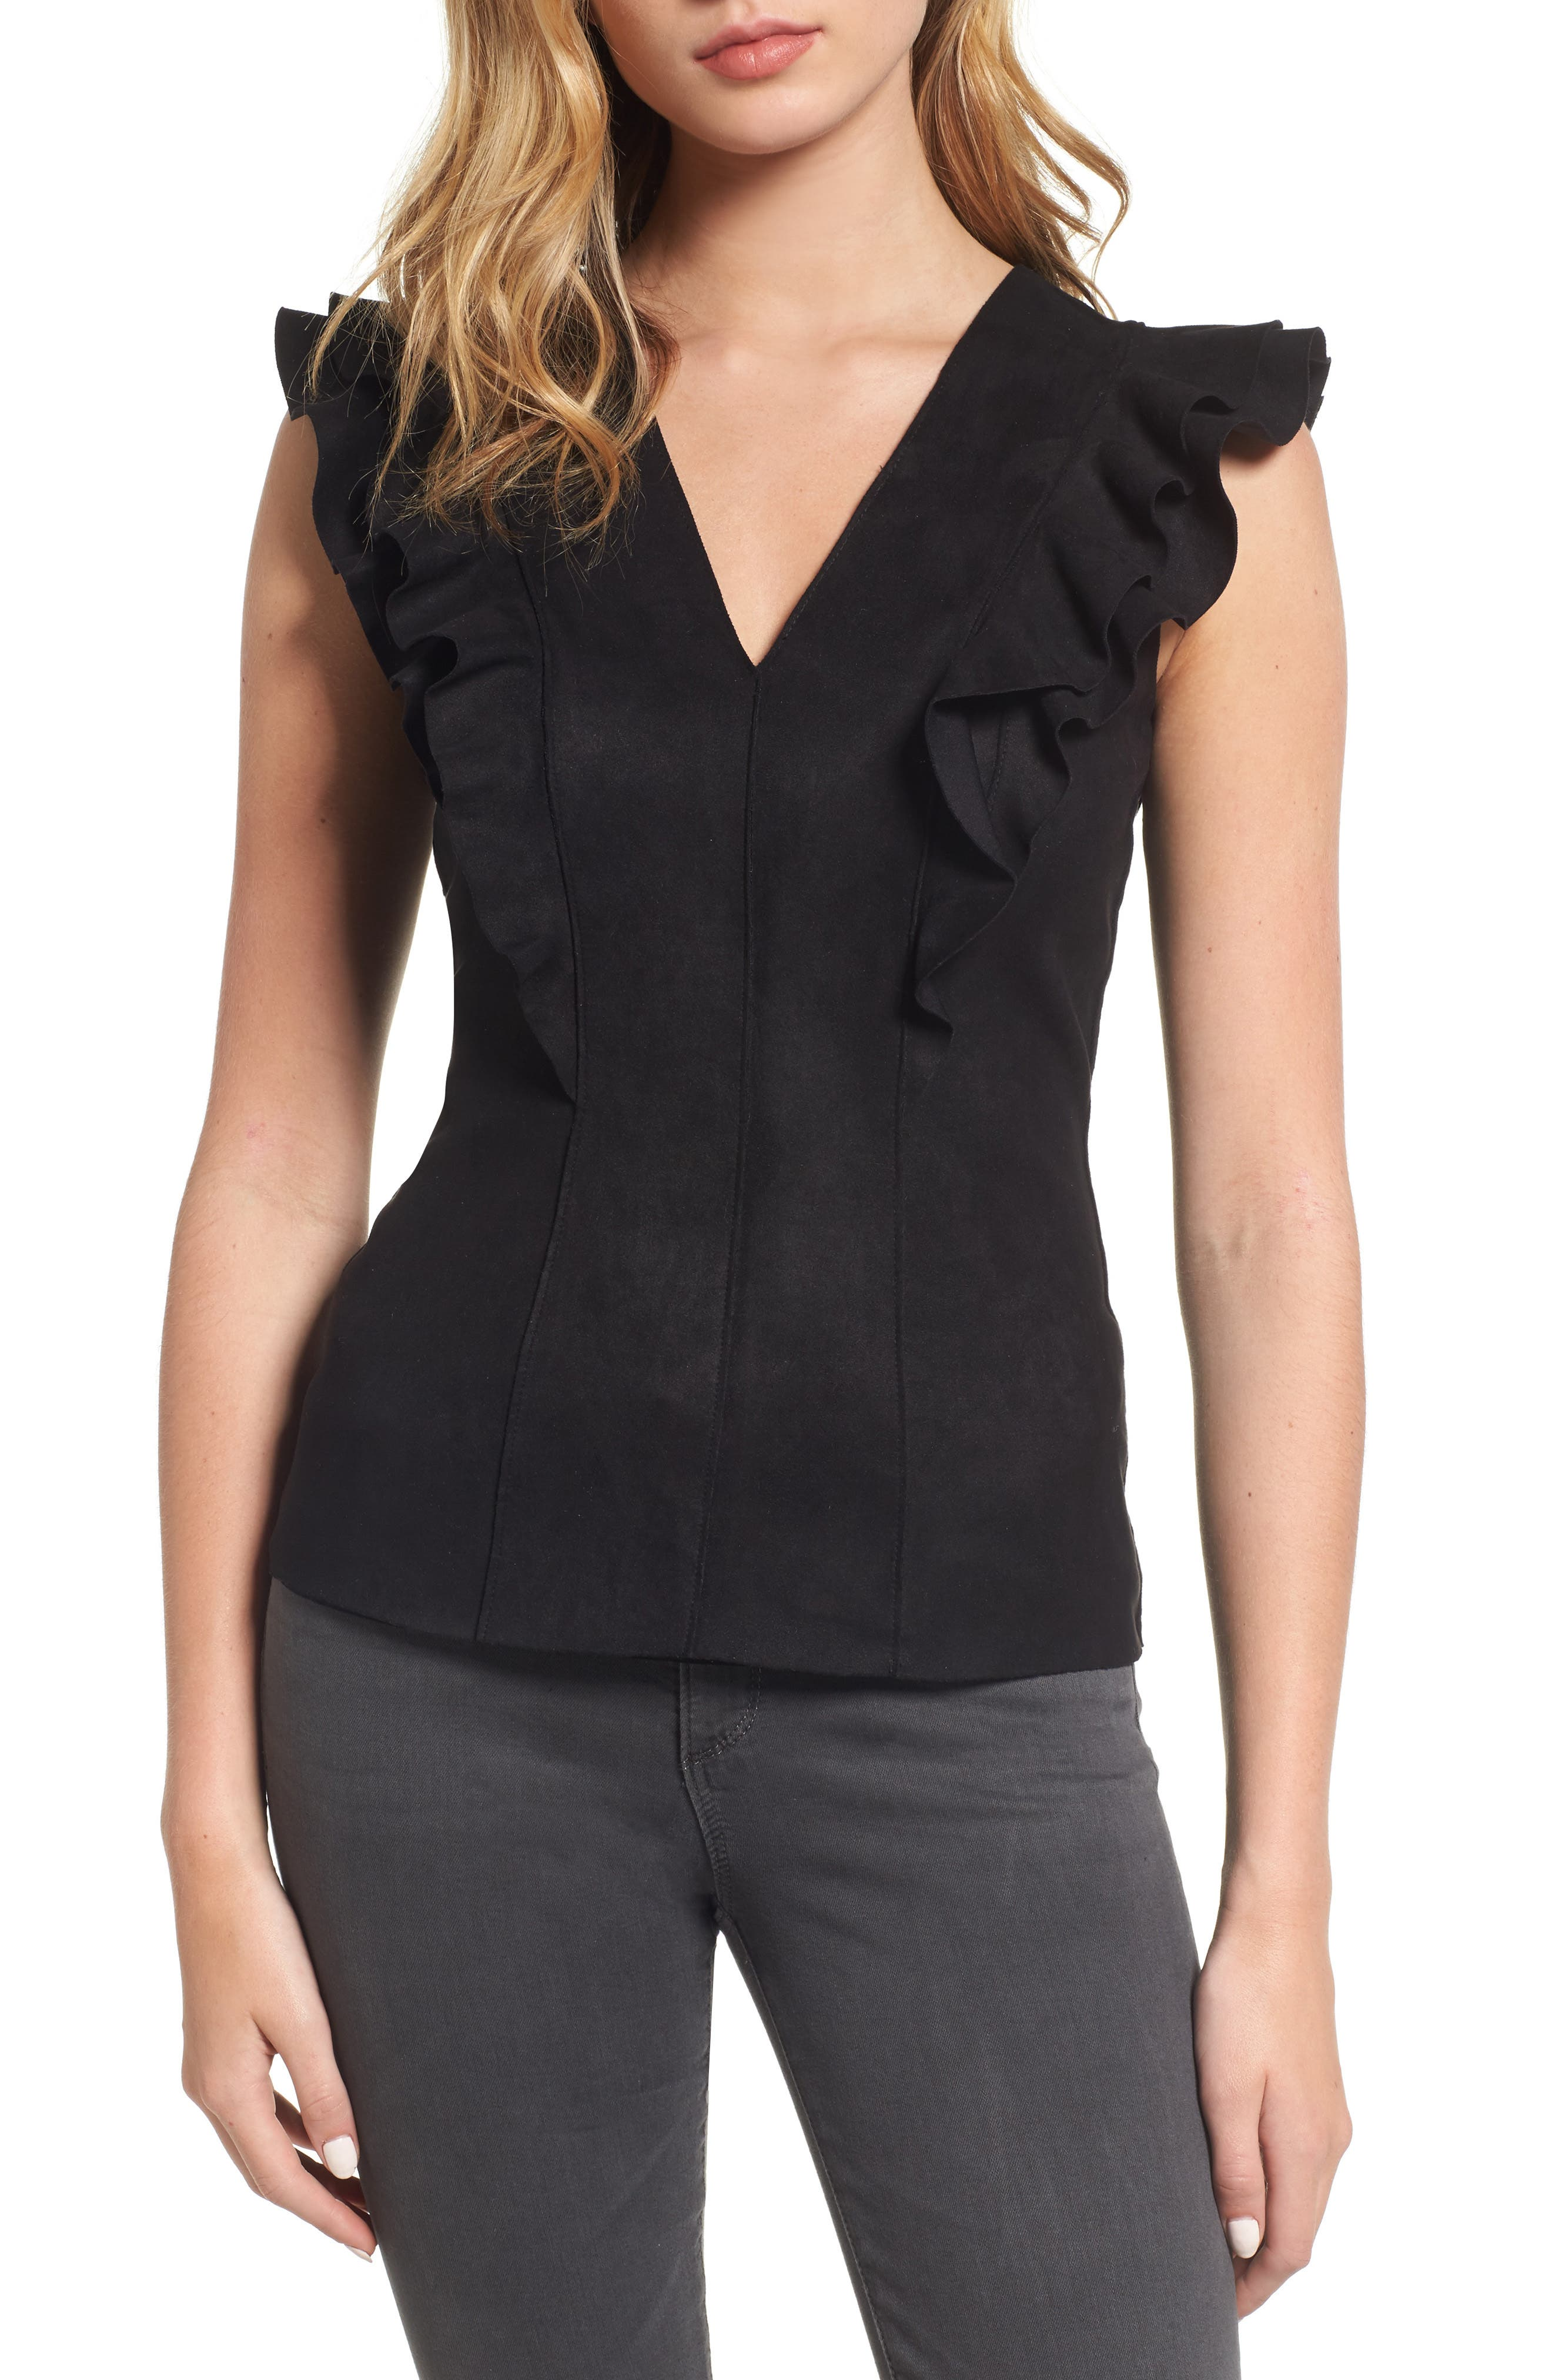 Goldilocks Top,                         Main,                         color, Black